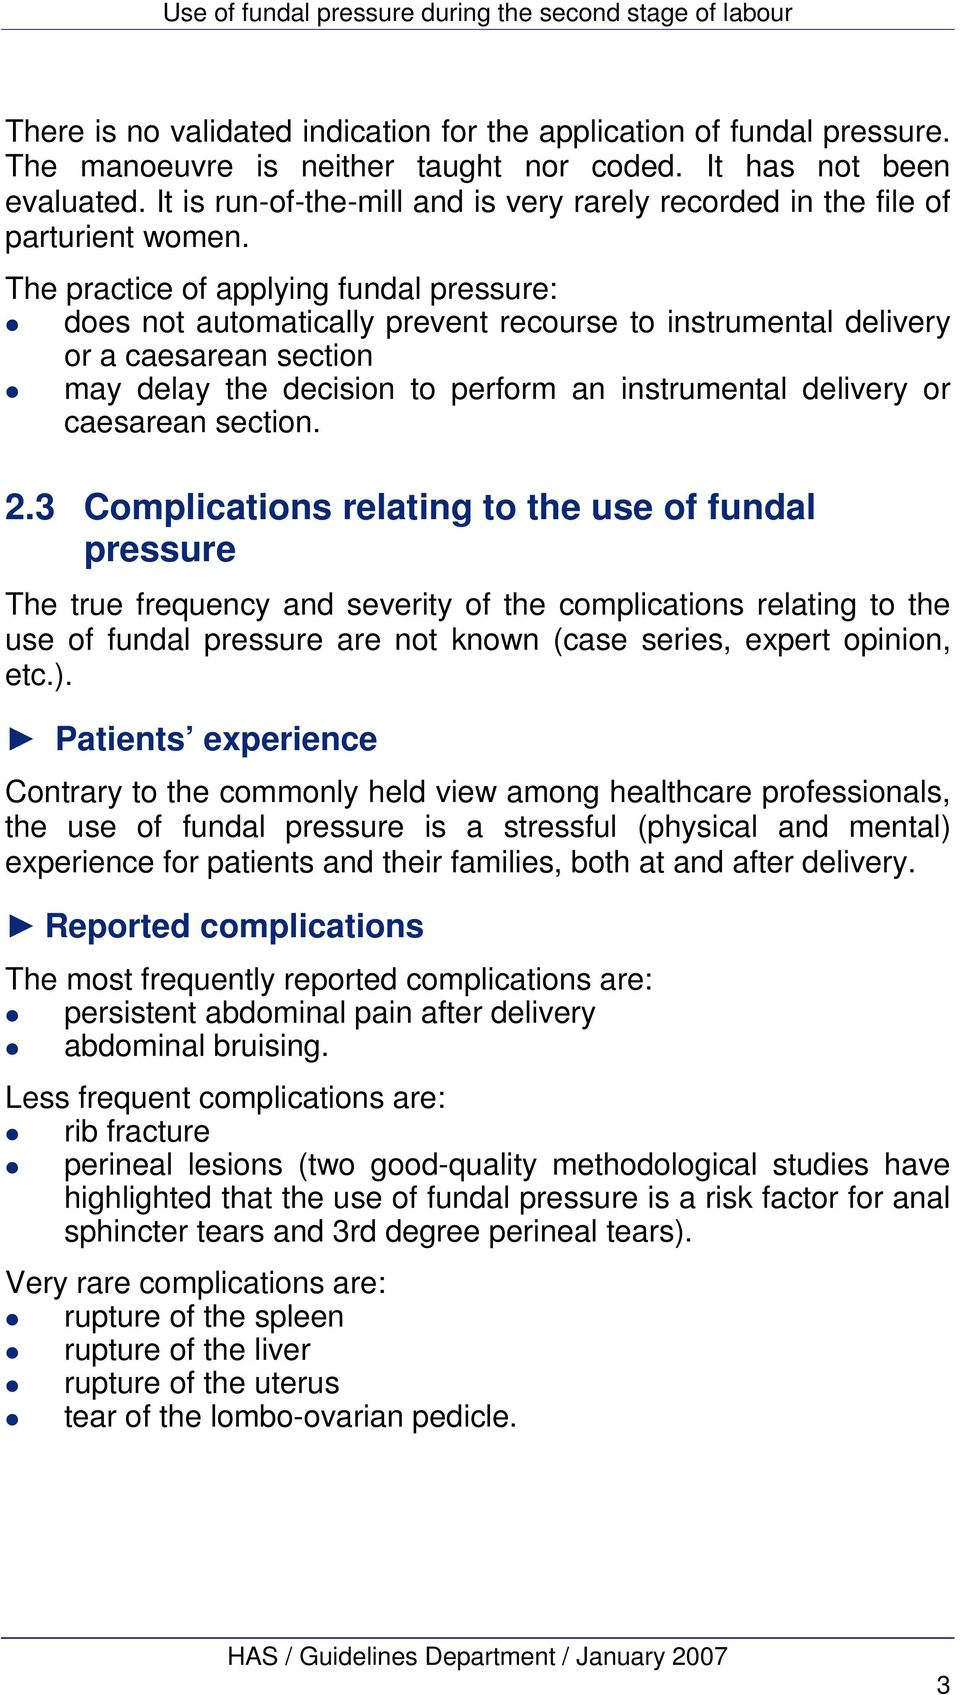 The practice of applying fundal pressure: does not automatically prevent recourse to instrumental delivery or a caesarean section may delay the decision to perform an instrumental delivery or